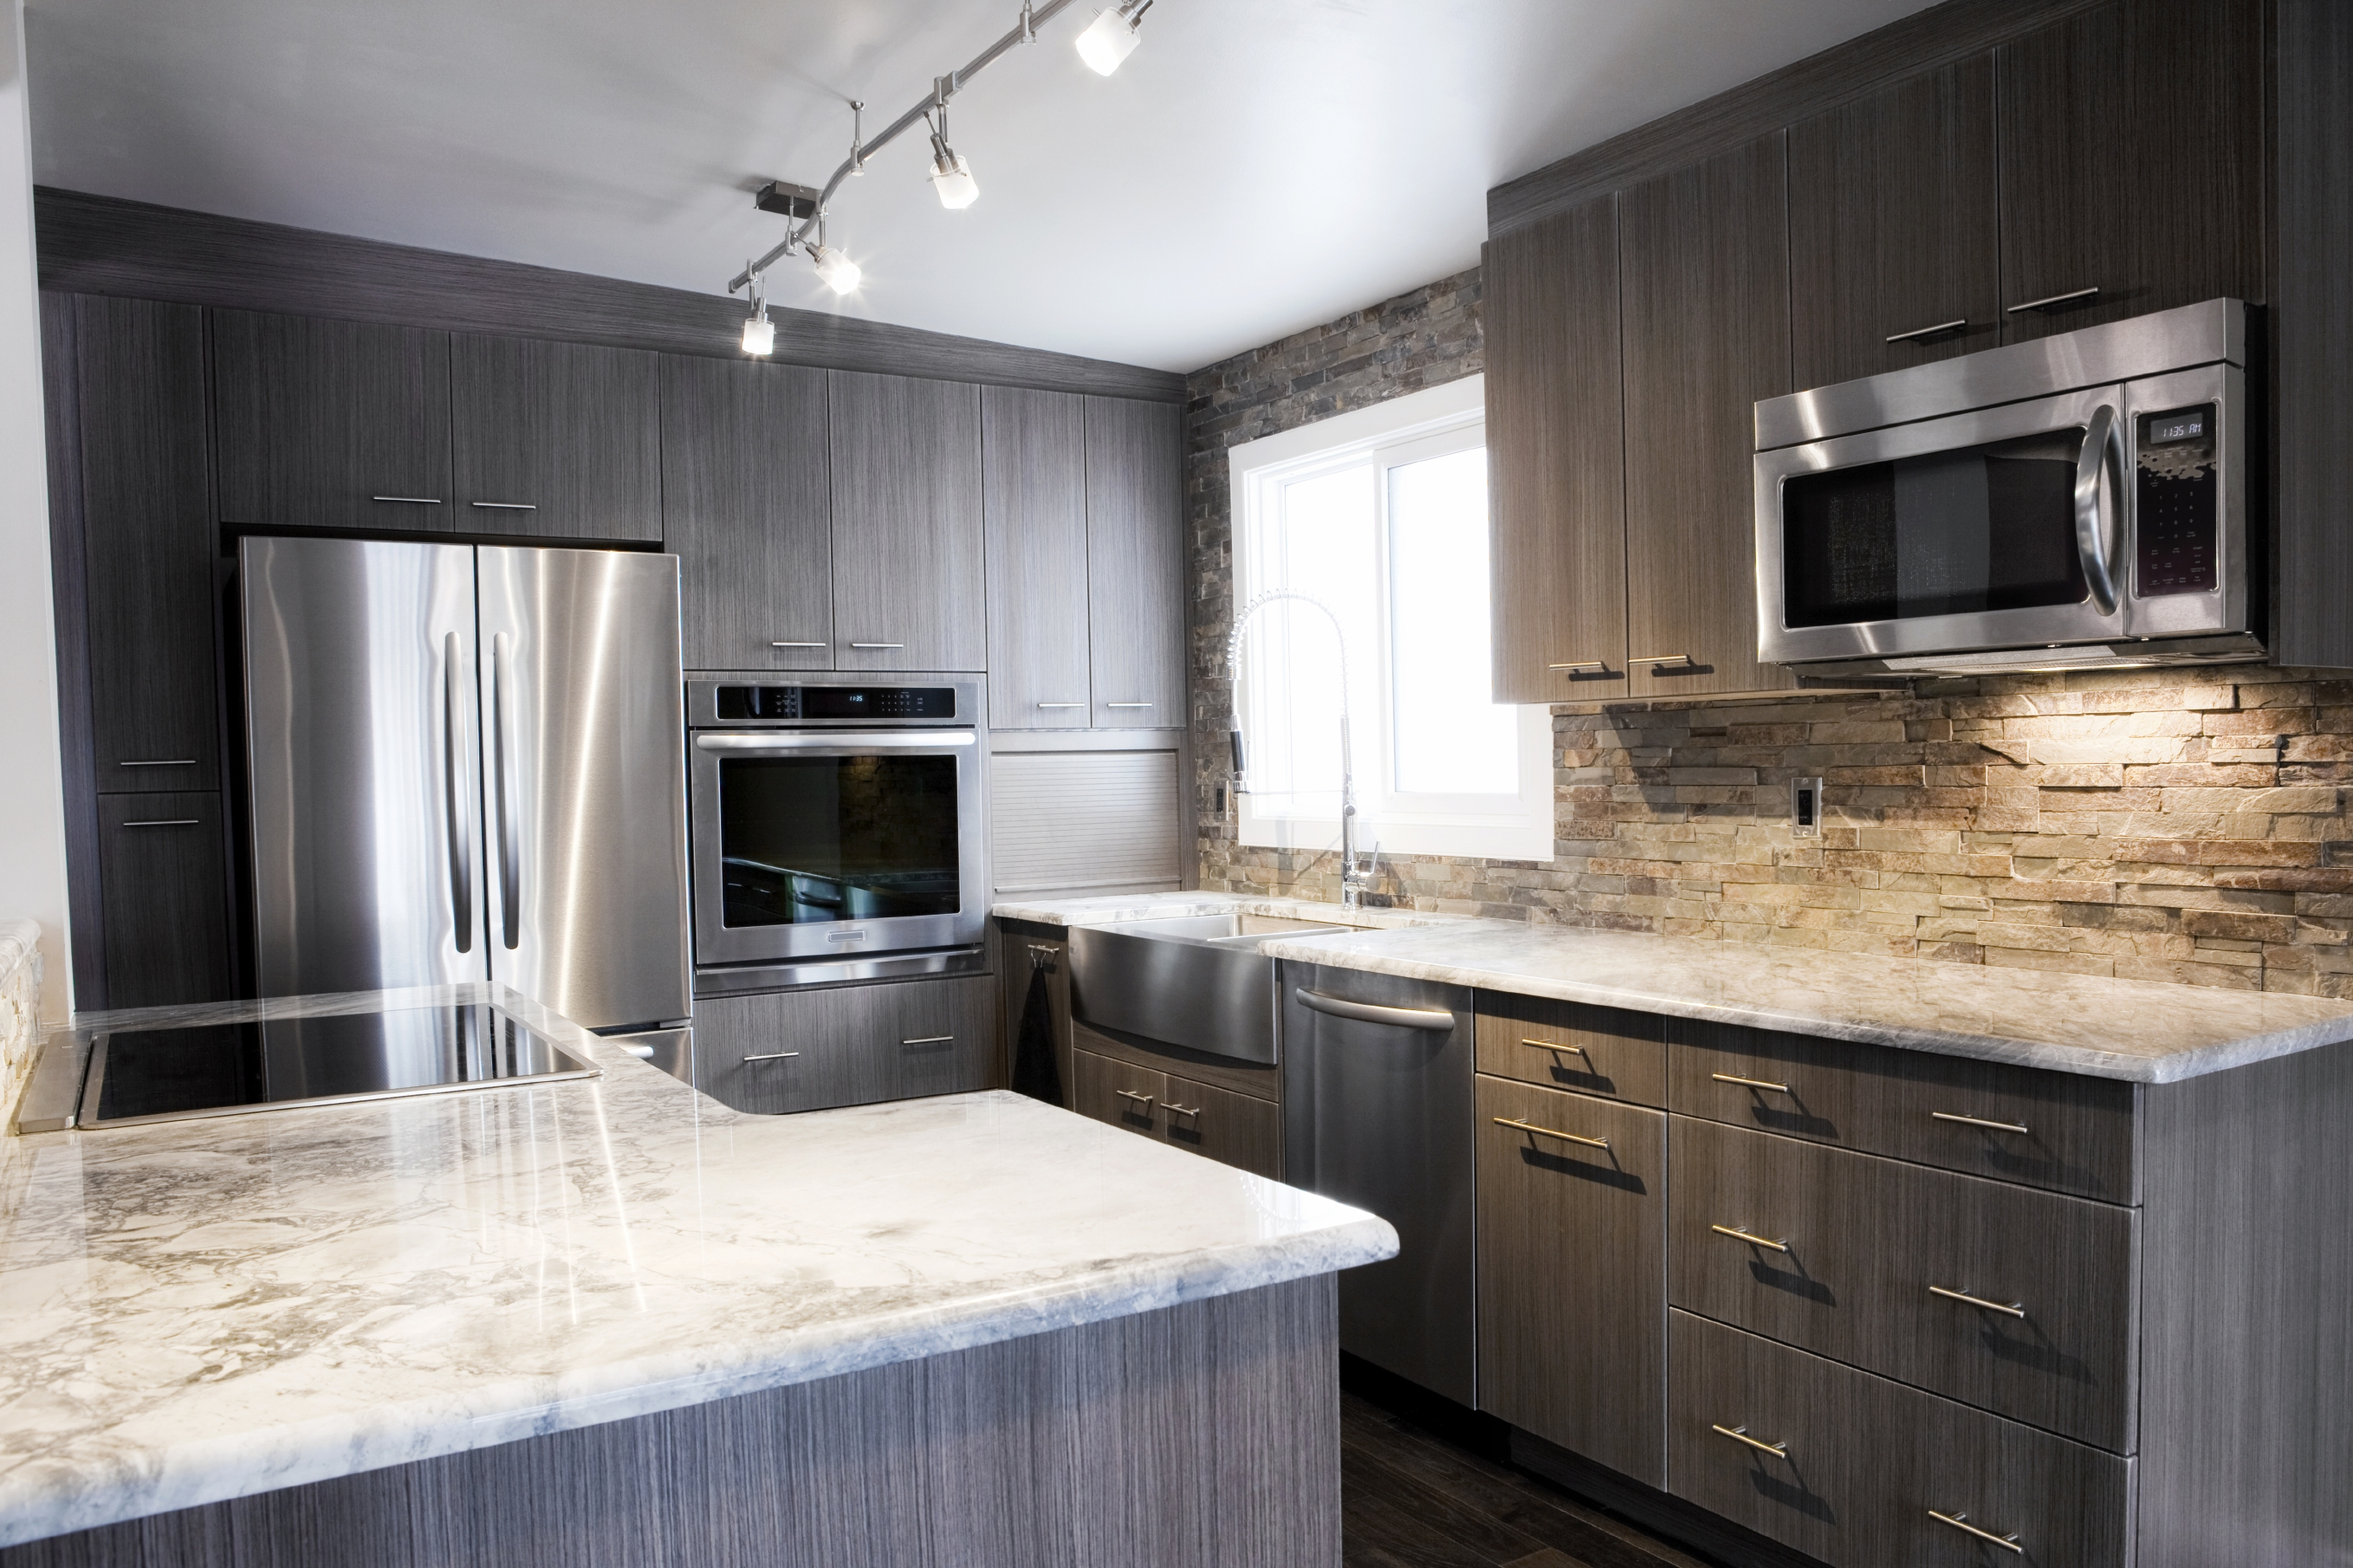 Countertops For Grey Kitchen Cabinetsmodern kitchen gray cabinets outofhome